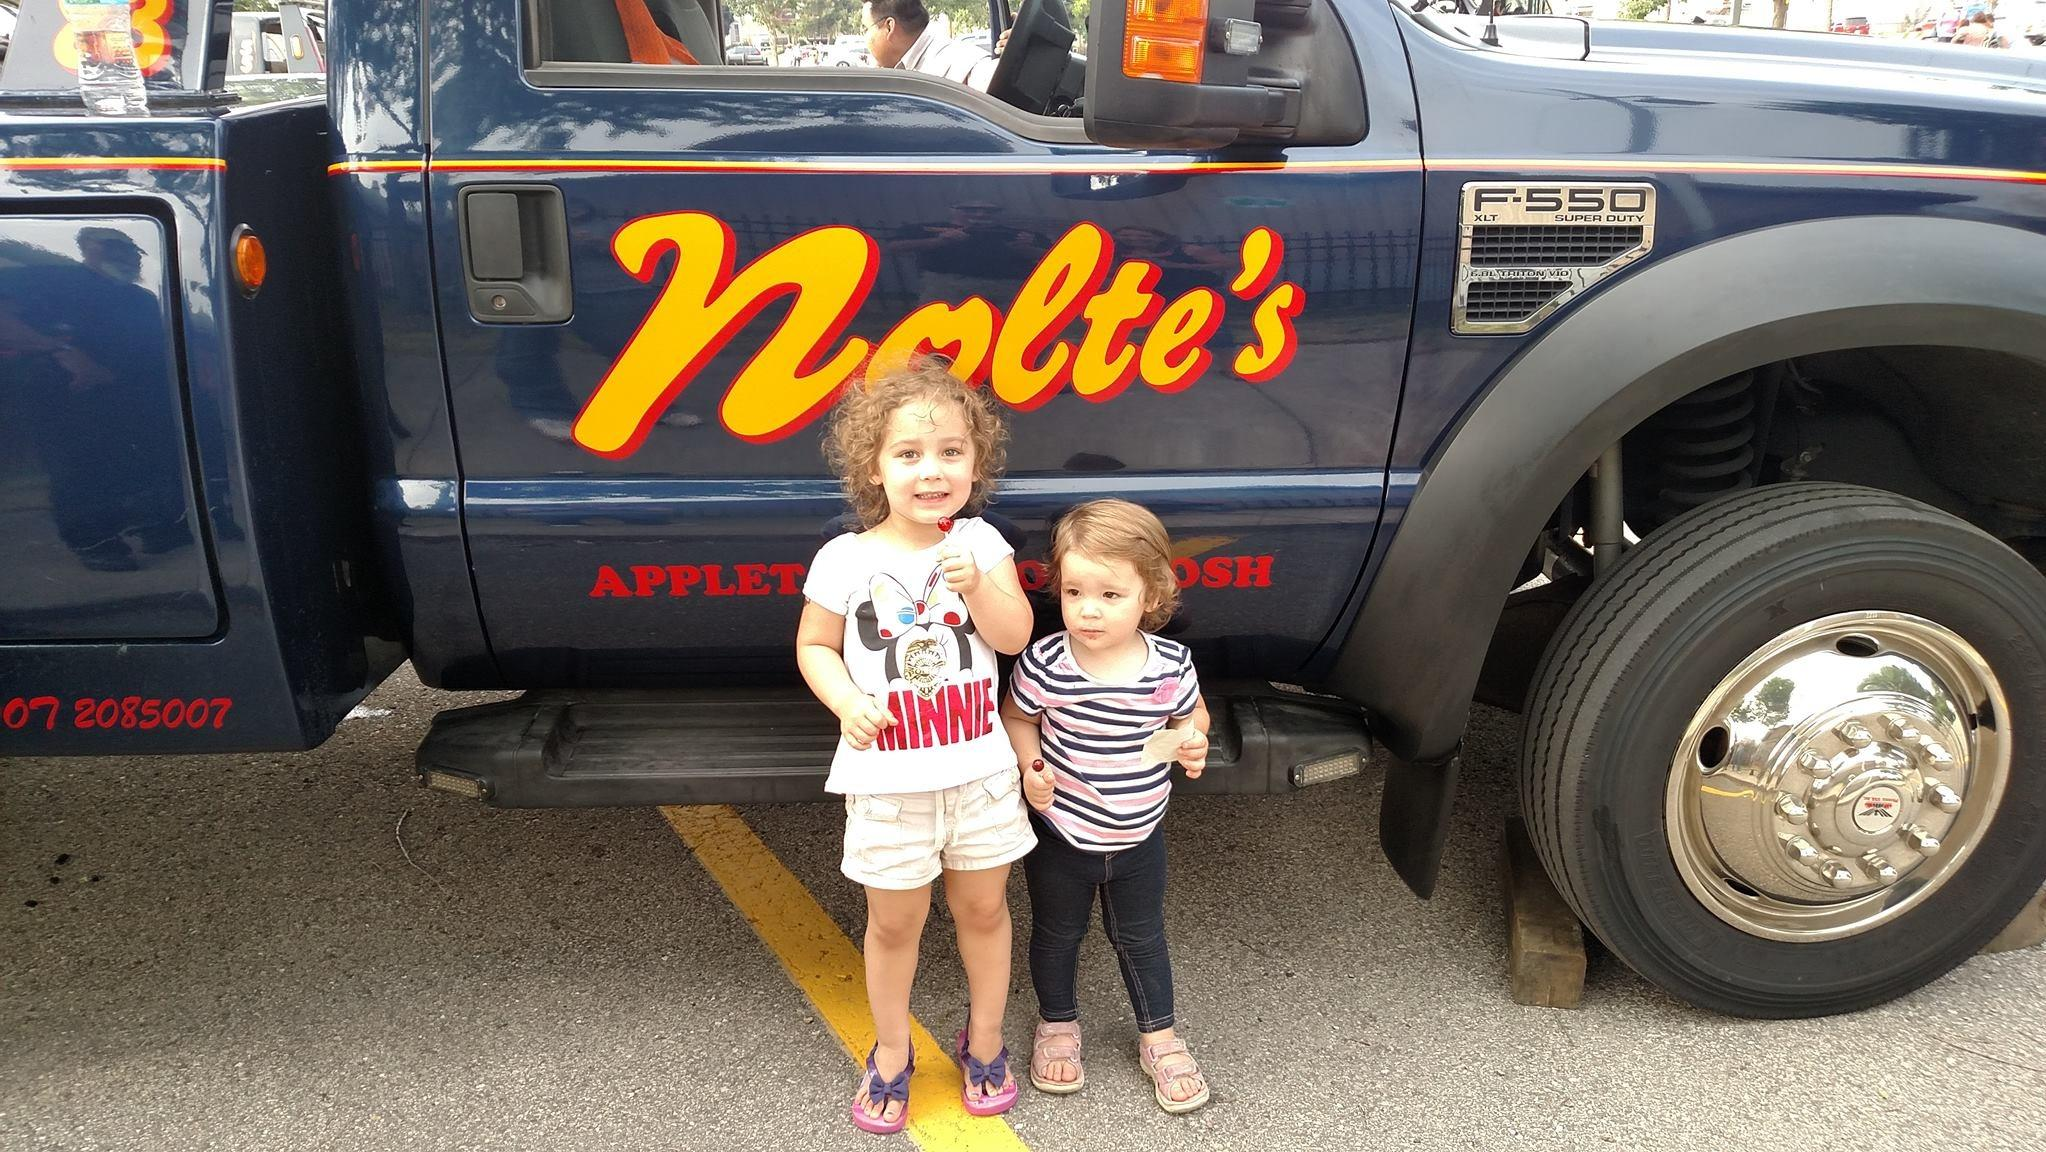 Nolte's Auto Service & 24Hour Towing in Oshkosh, WI, photo #7